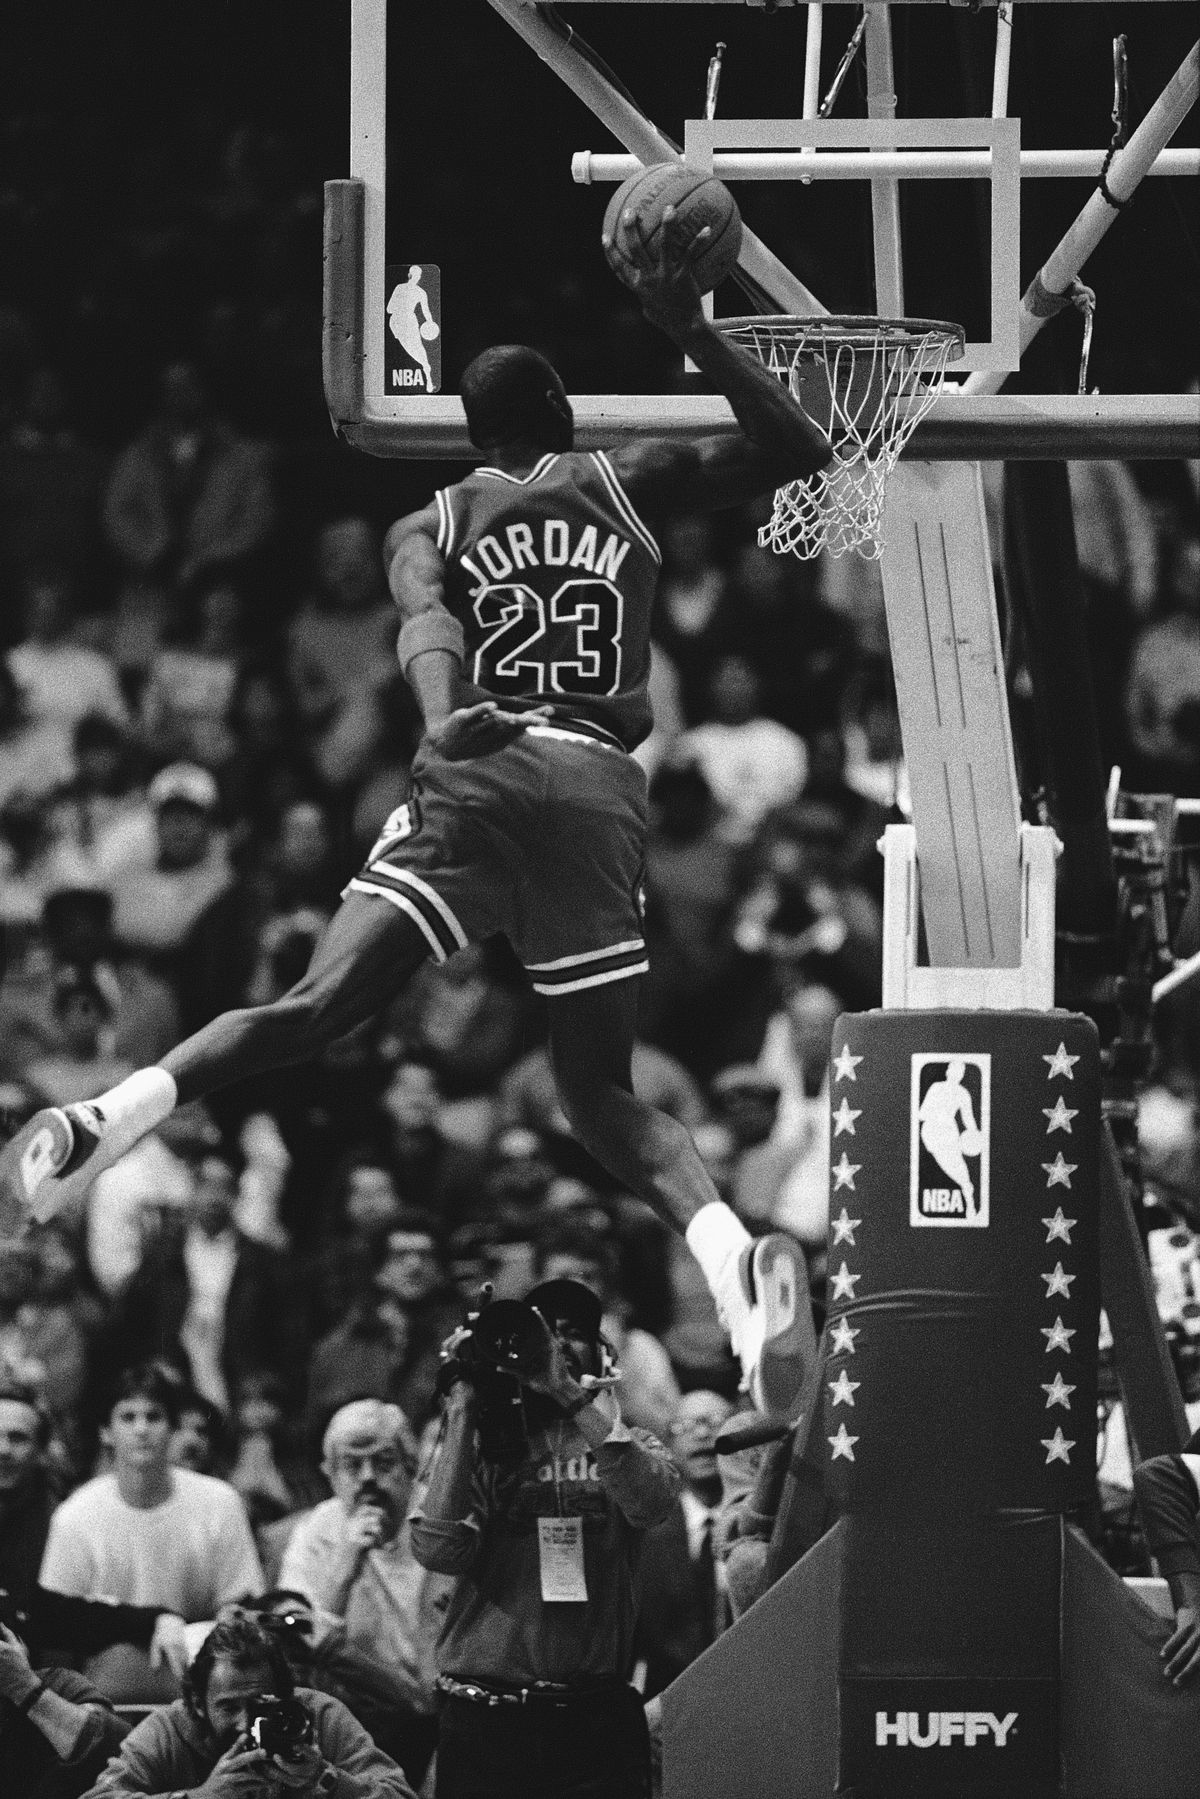 1988 All Star Slam Dunk Contest: Michael Jordan